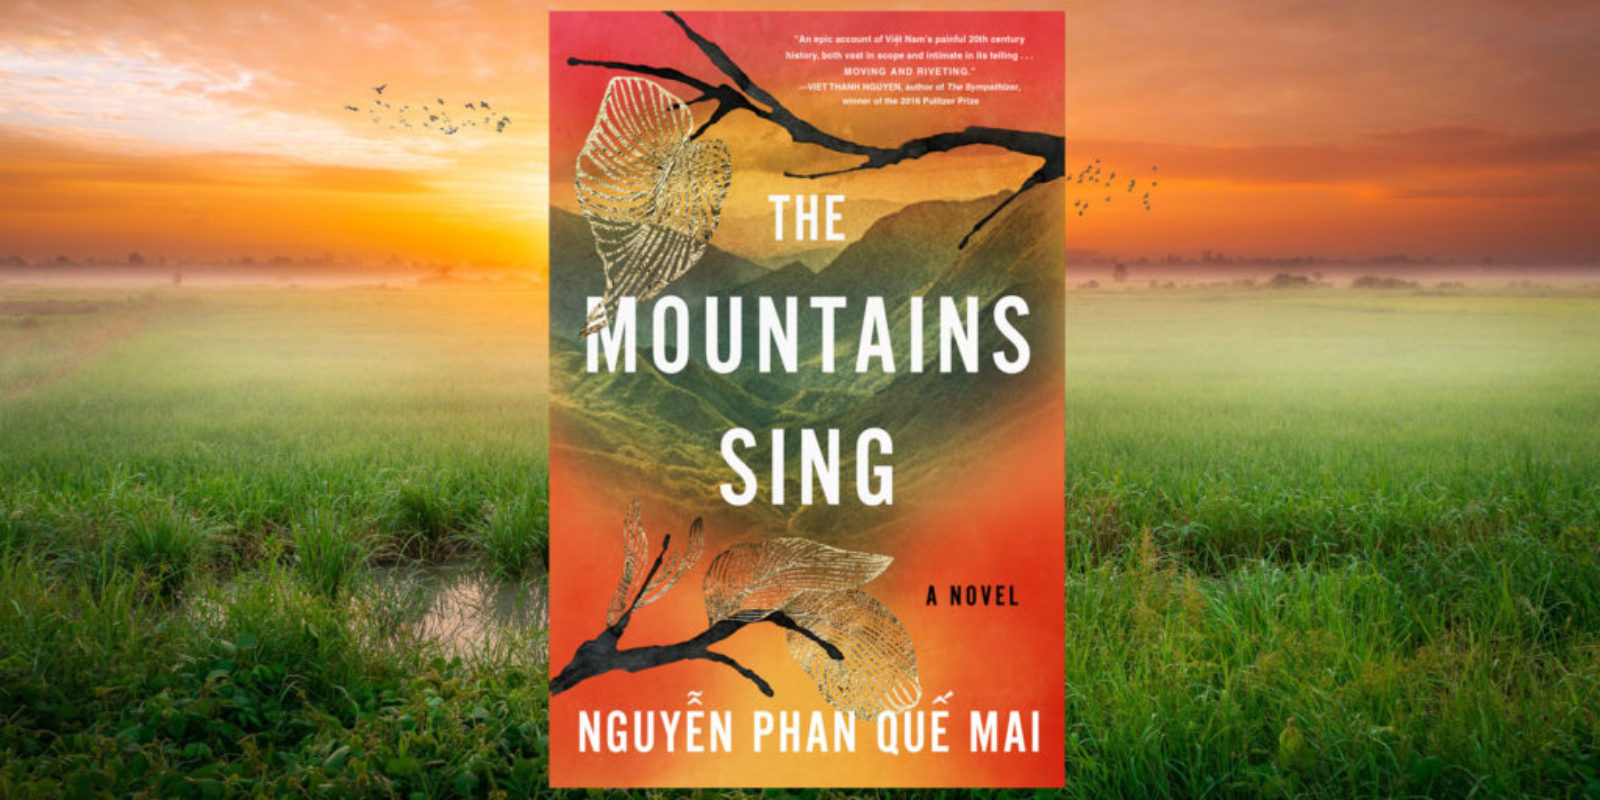 The-Mountains-Sing-by-Nguyen-Phan-Que-Mai